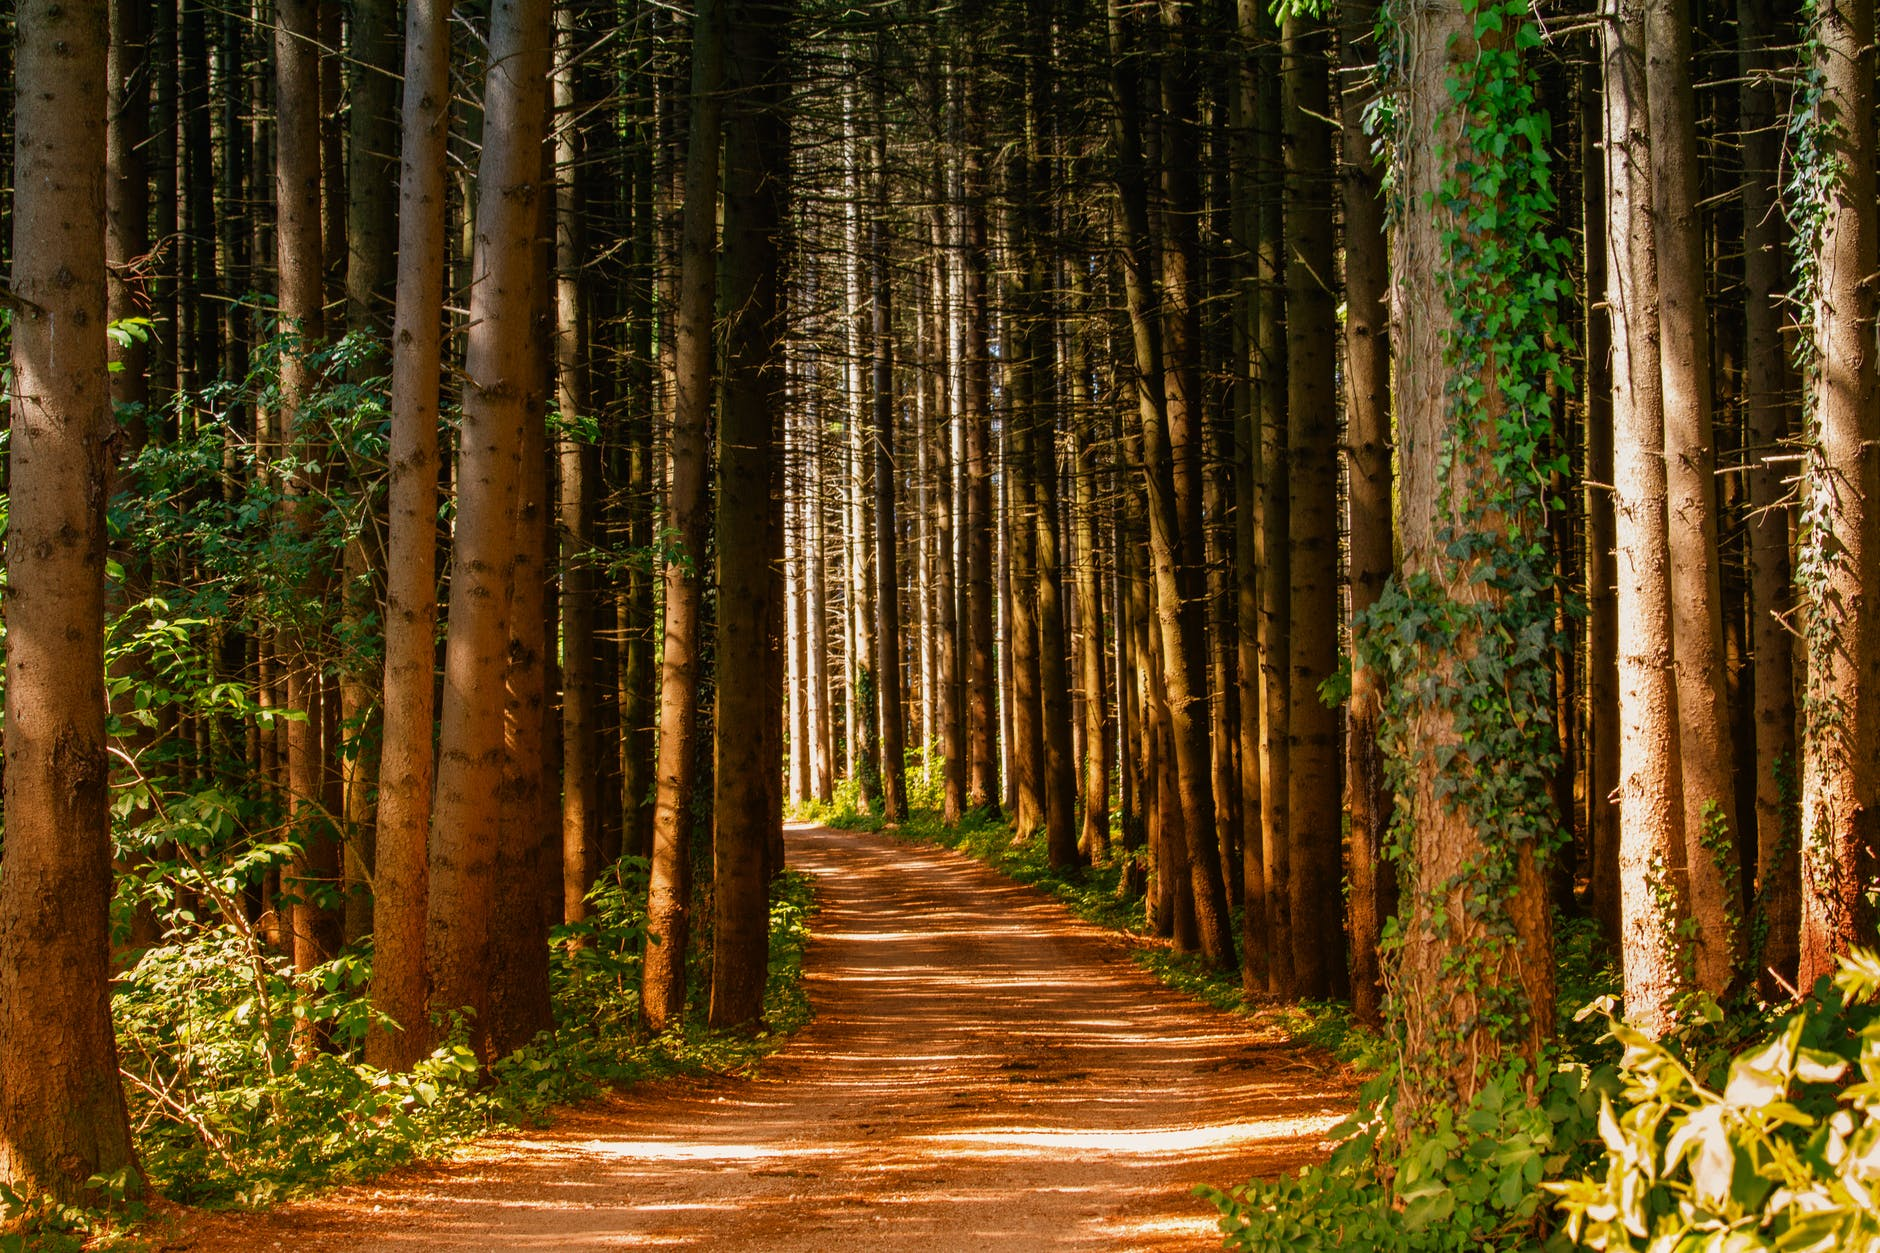 Forest path | Source: Pexels